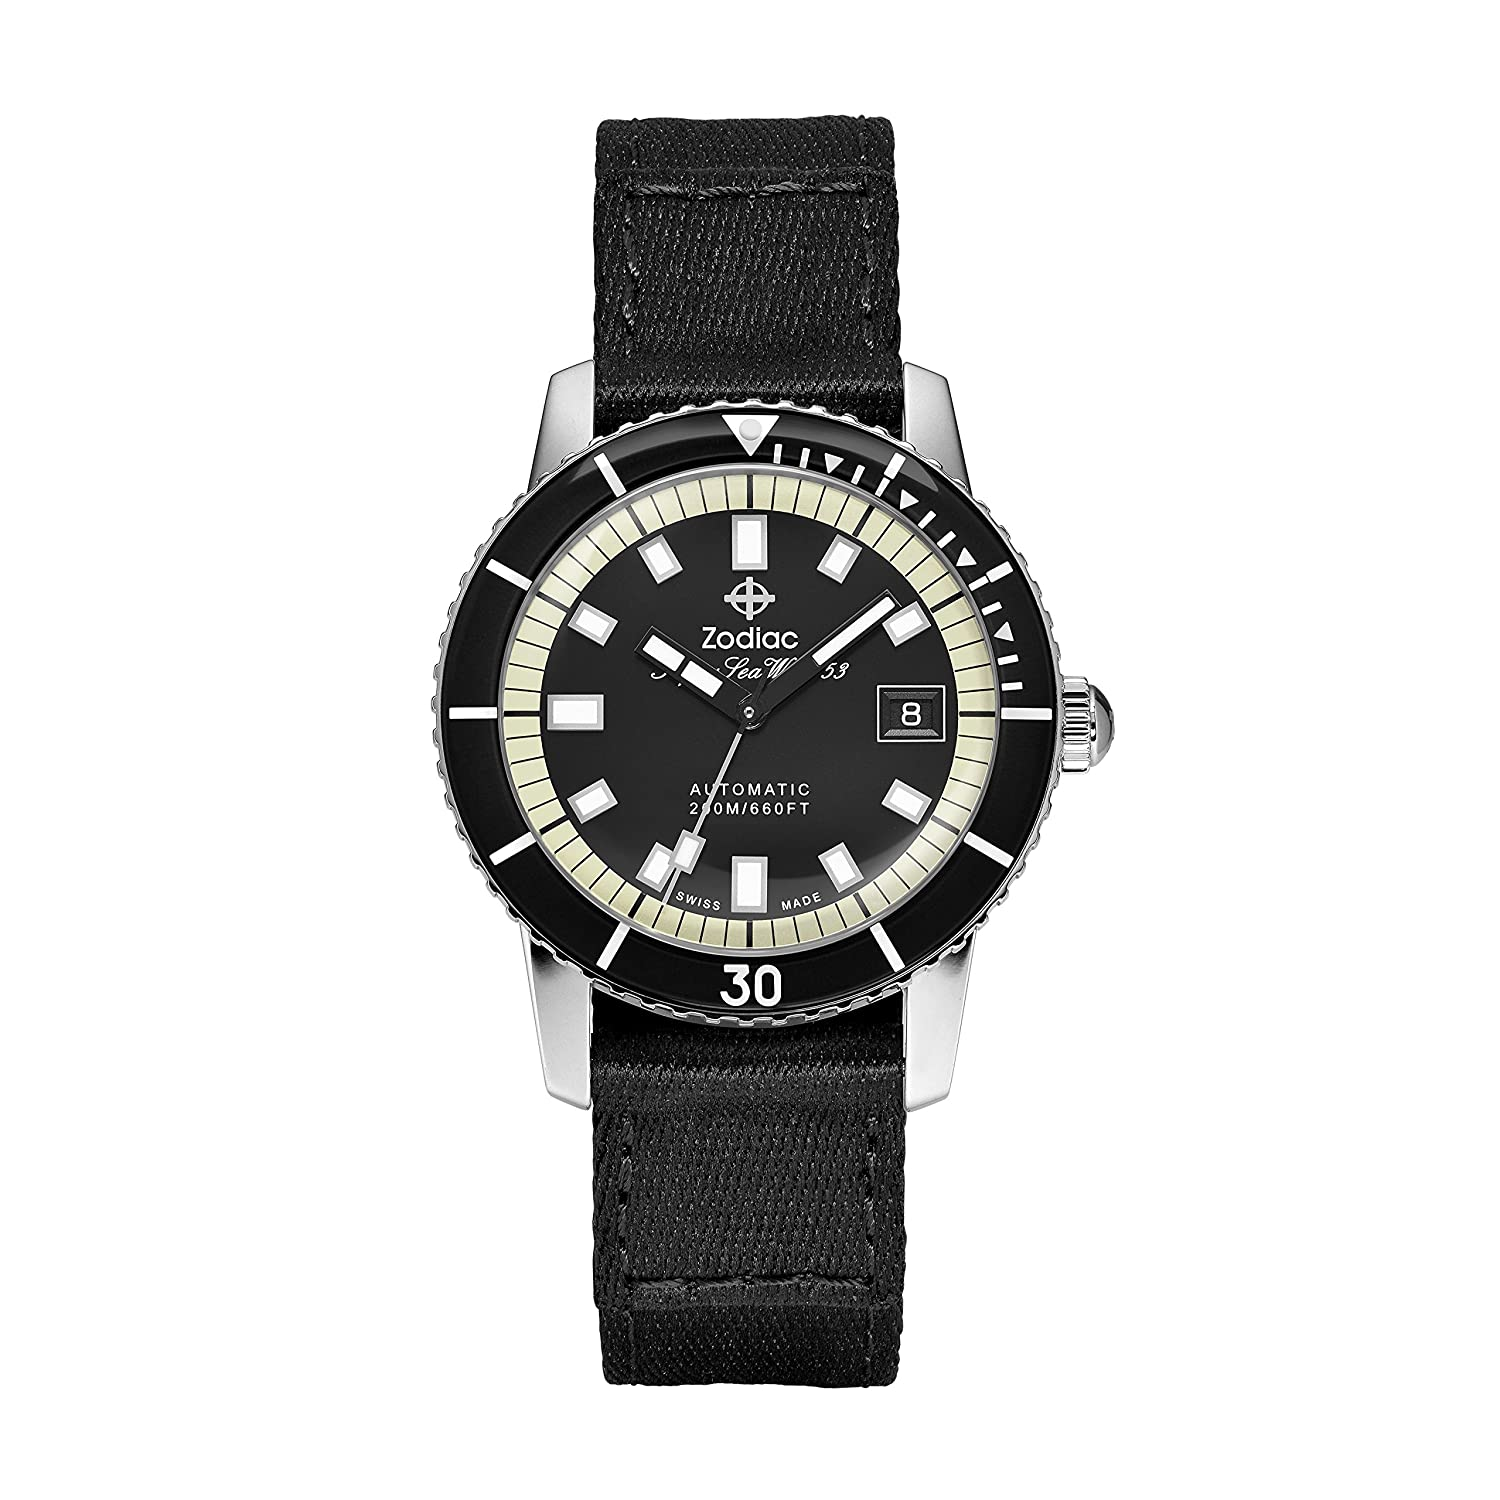 jet watches vintage watch zodiac shop sold aerospace